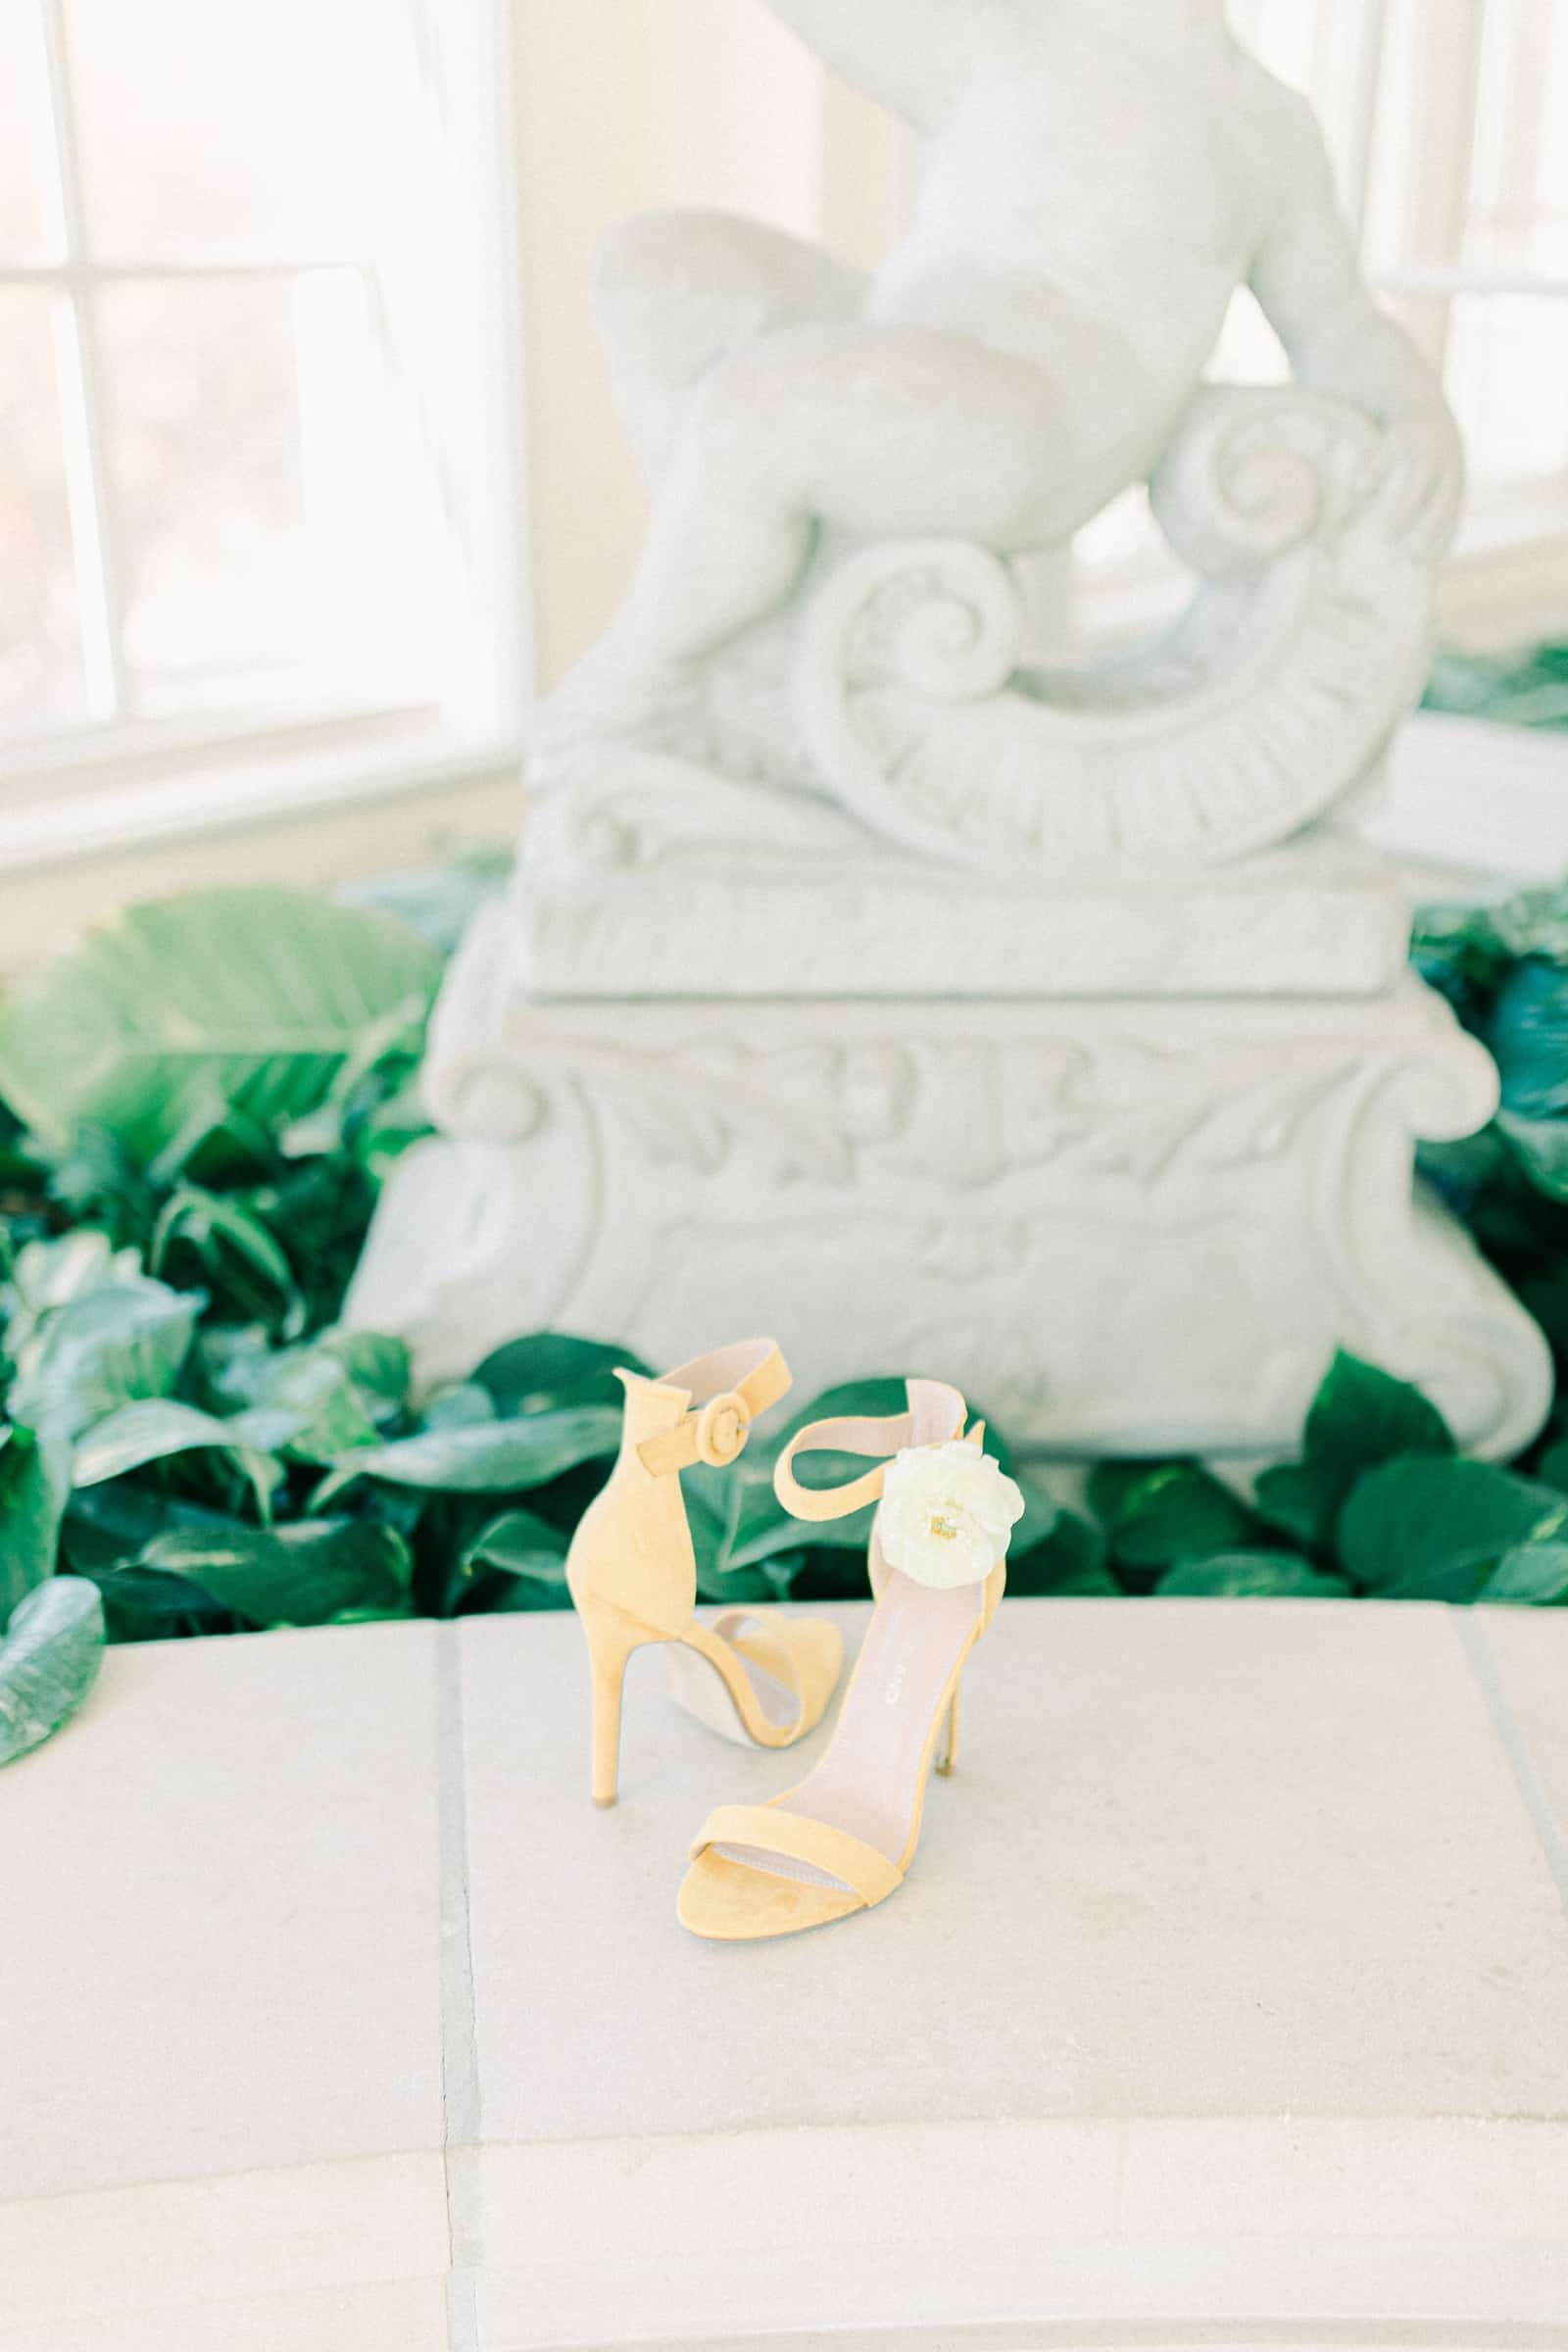 Bride wedding shoes with flowers in greenhouse wedding